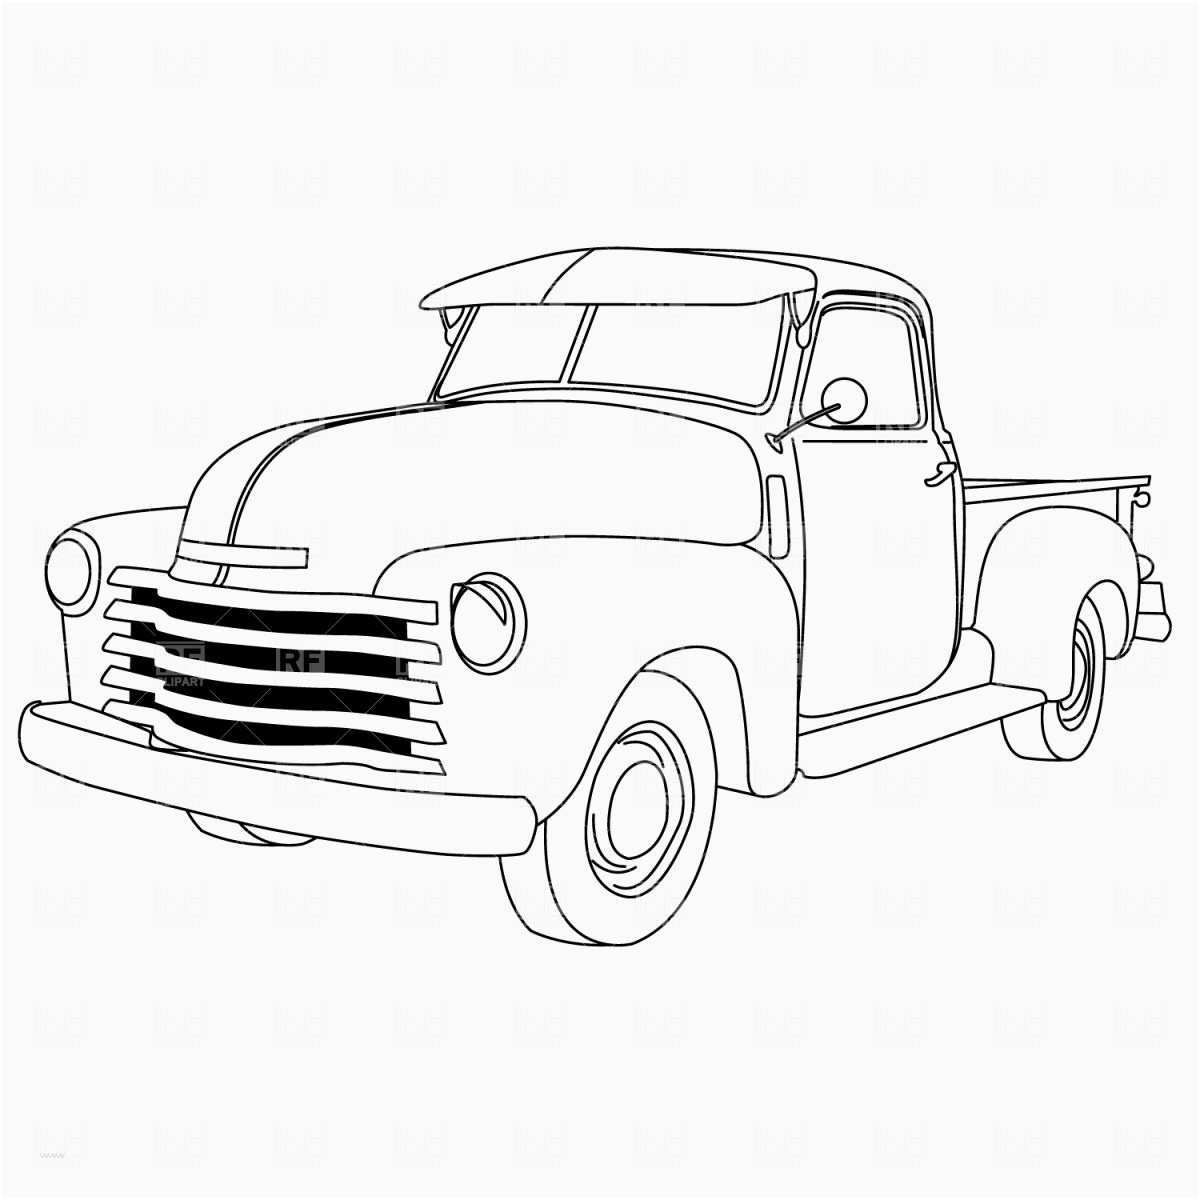 Lowered Chevy Truck Coloring Page In 2020 Truck Coloring Pages